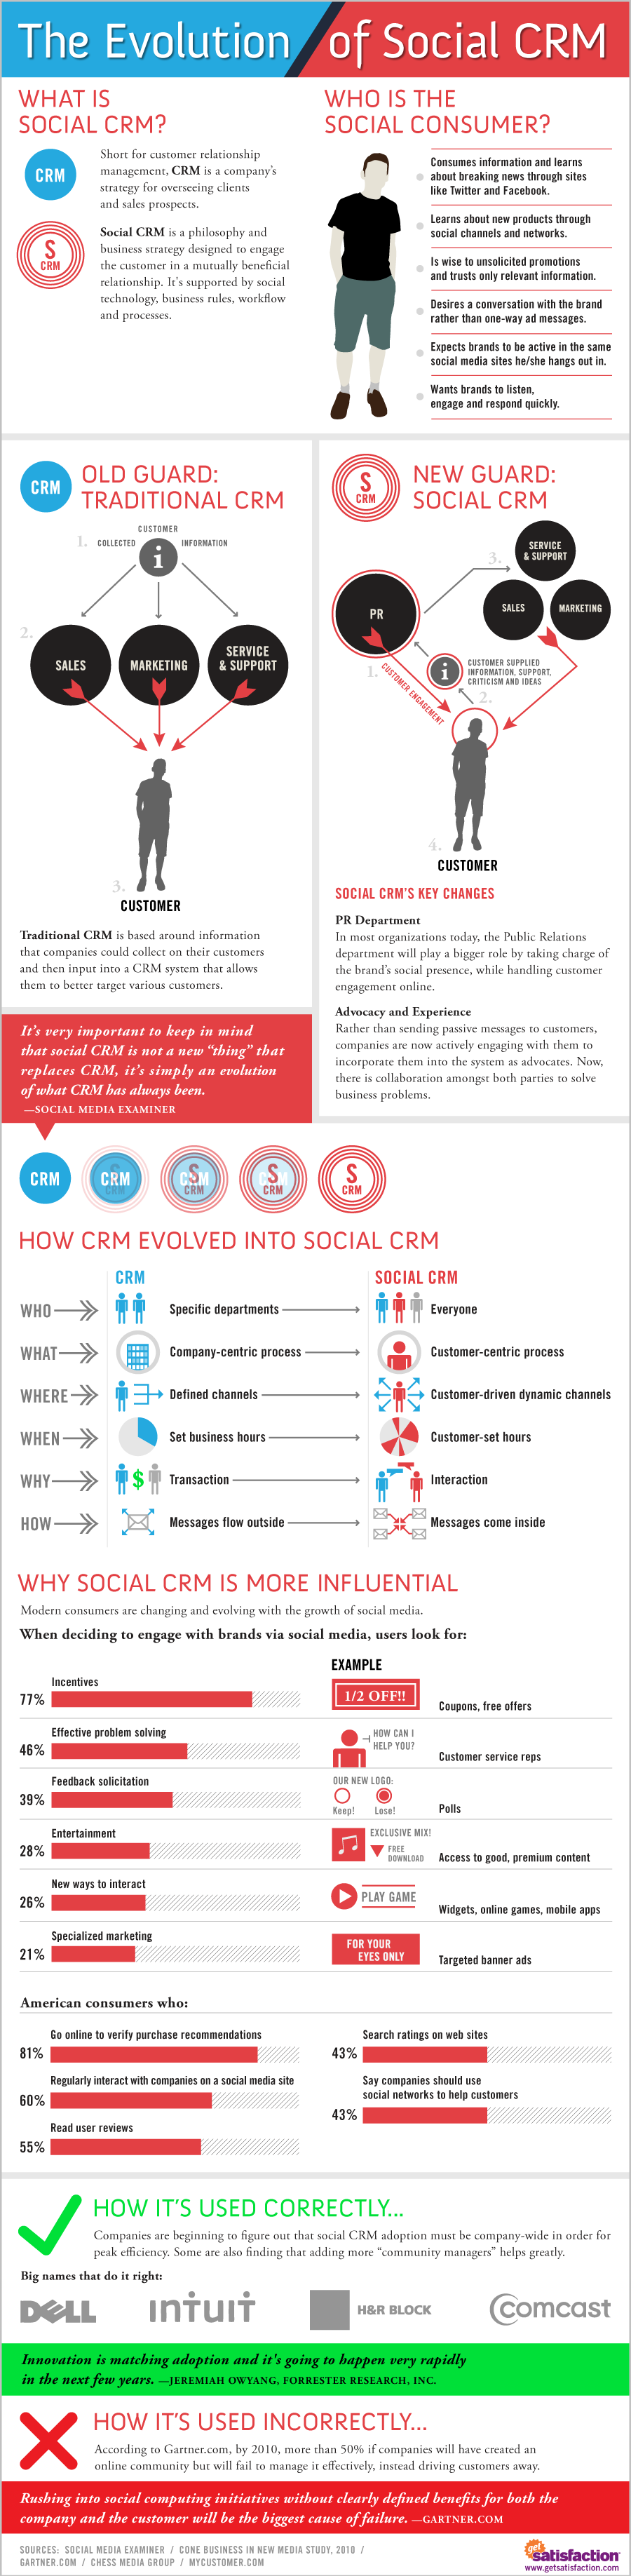 social crm evolution 4 Steps How Closed Loop Marketing Can Help you Grow your Revenue